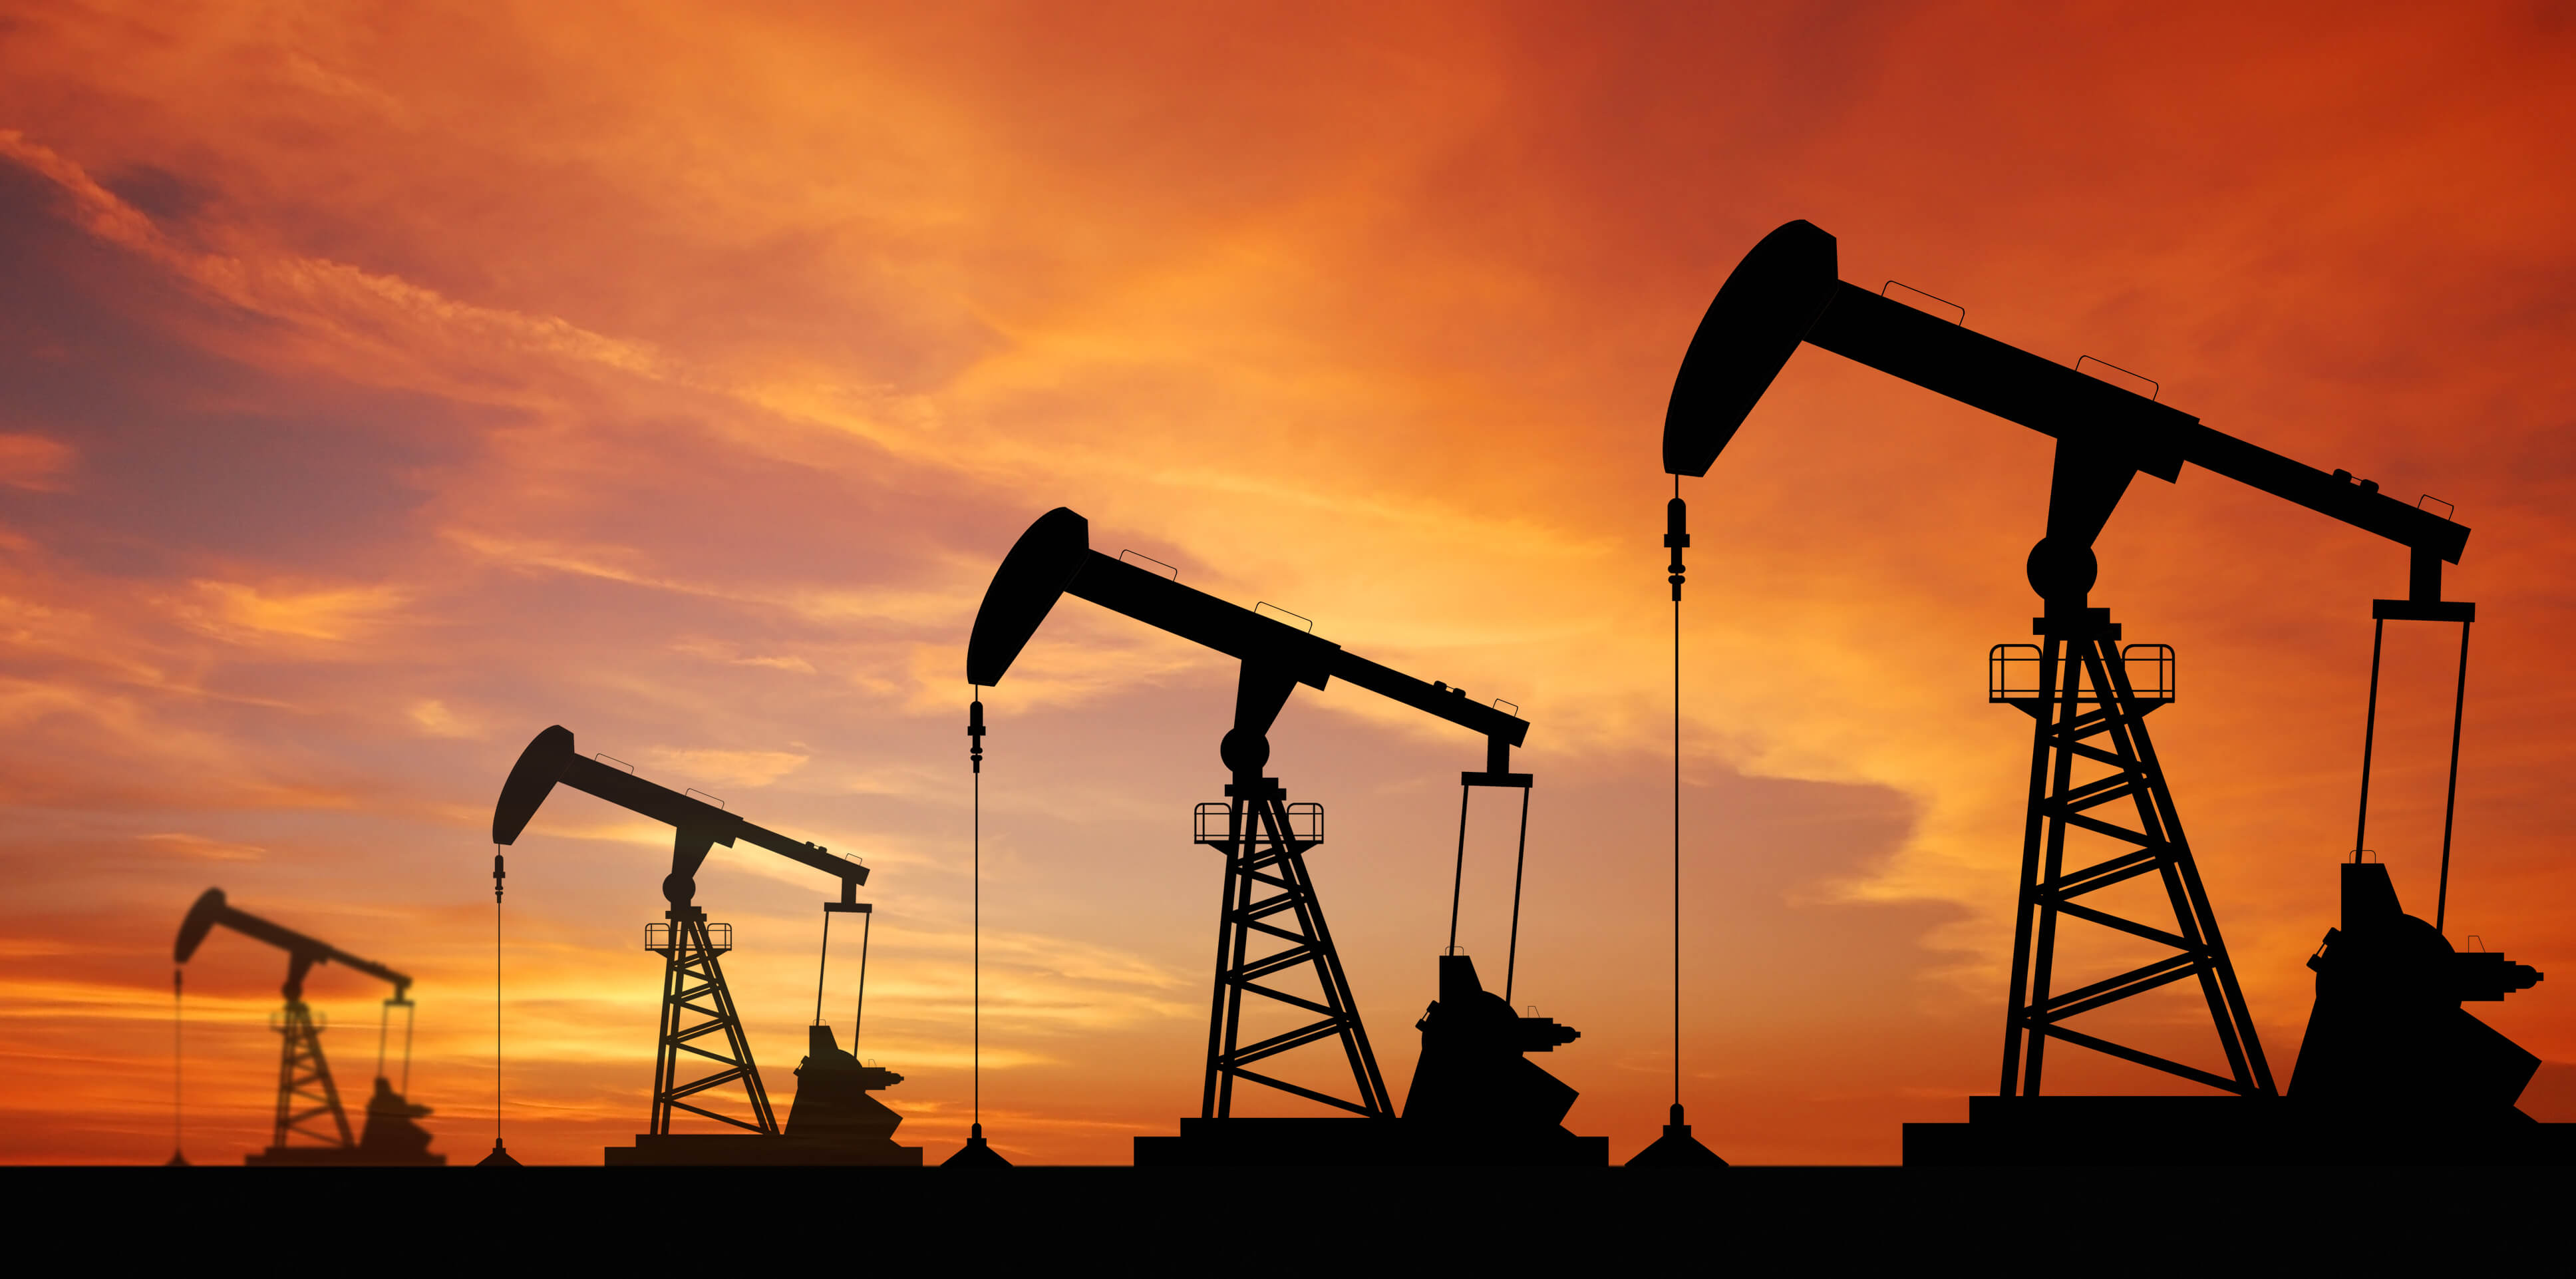 Oil prices and conflict with Iran